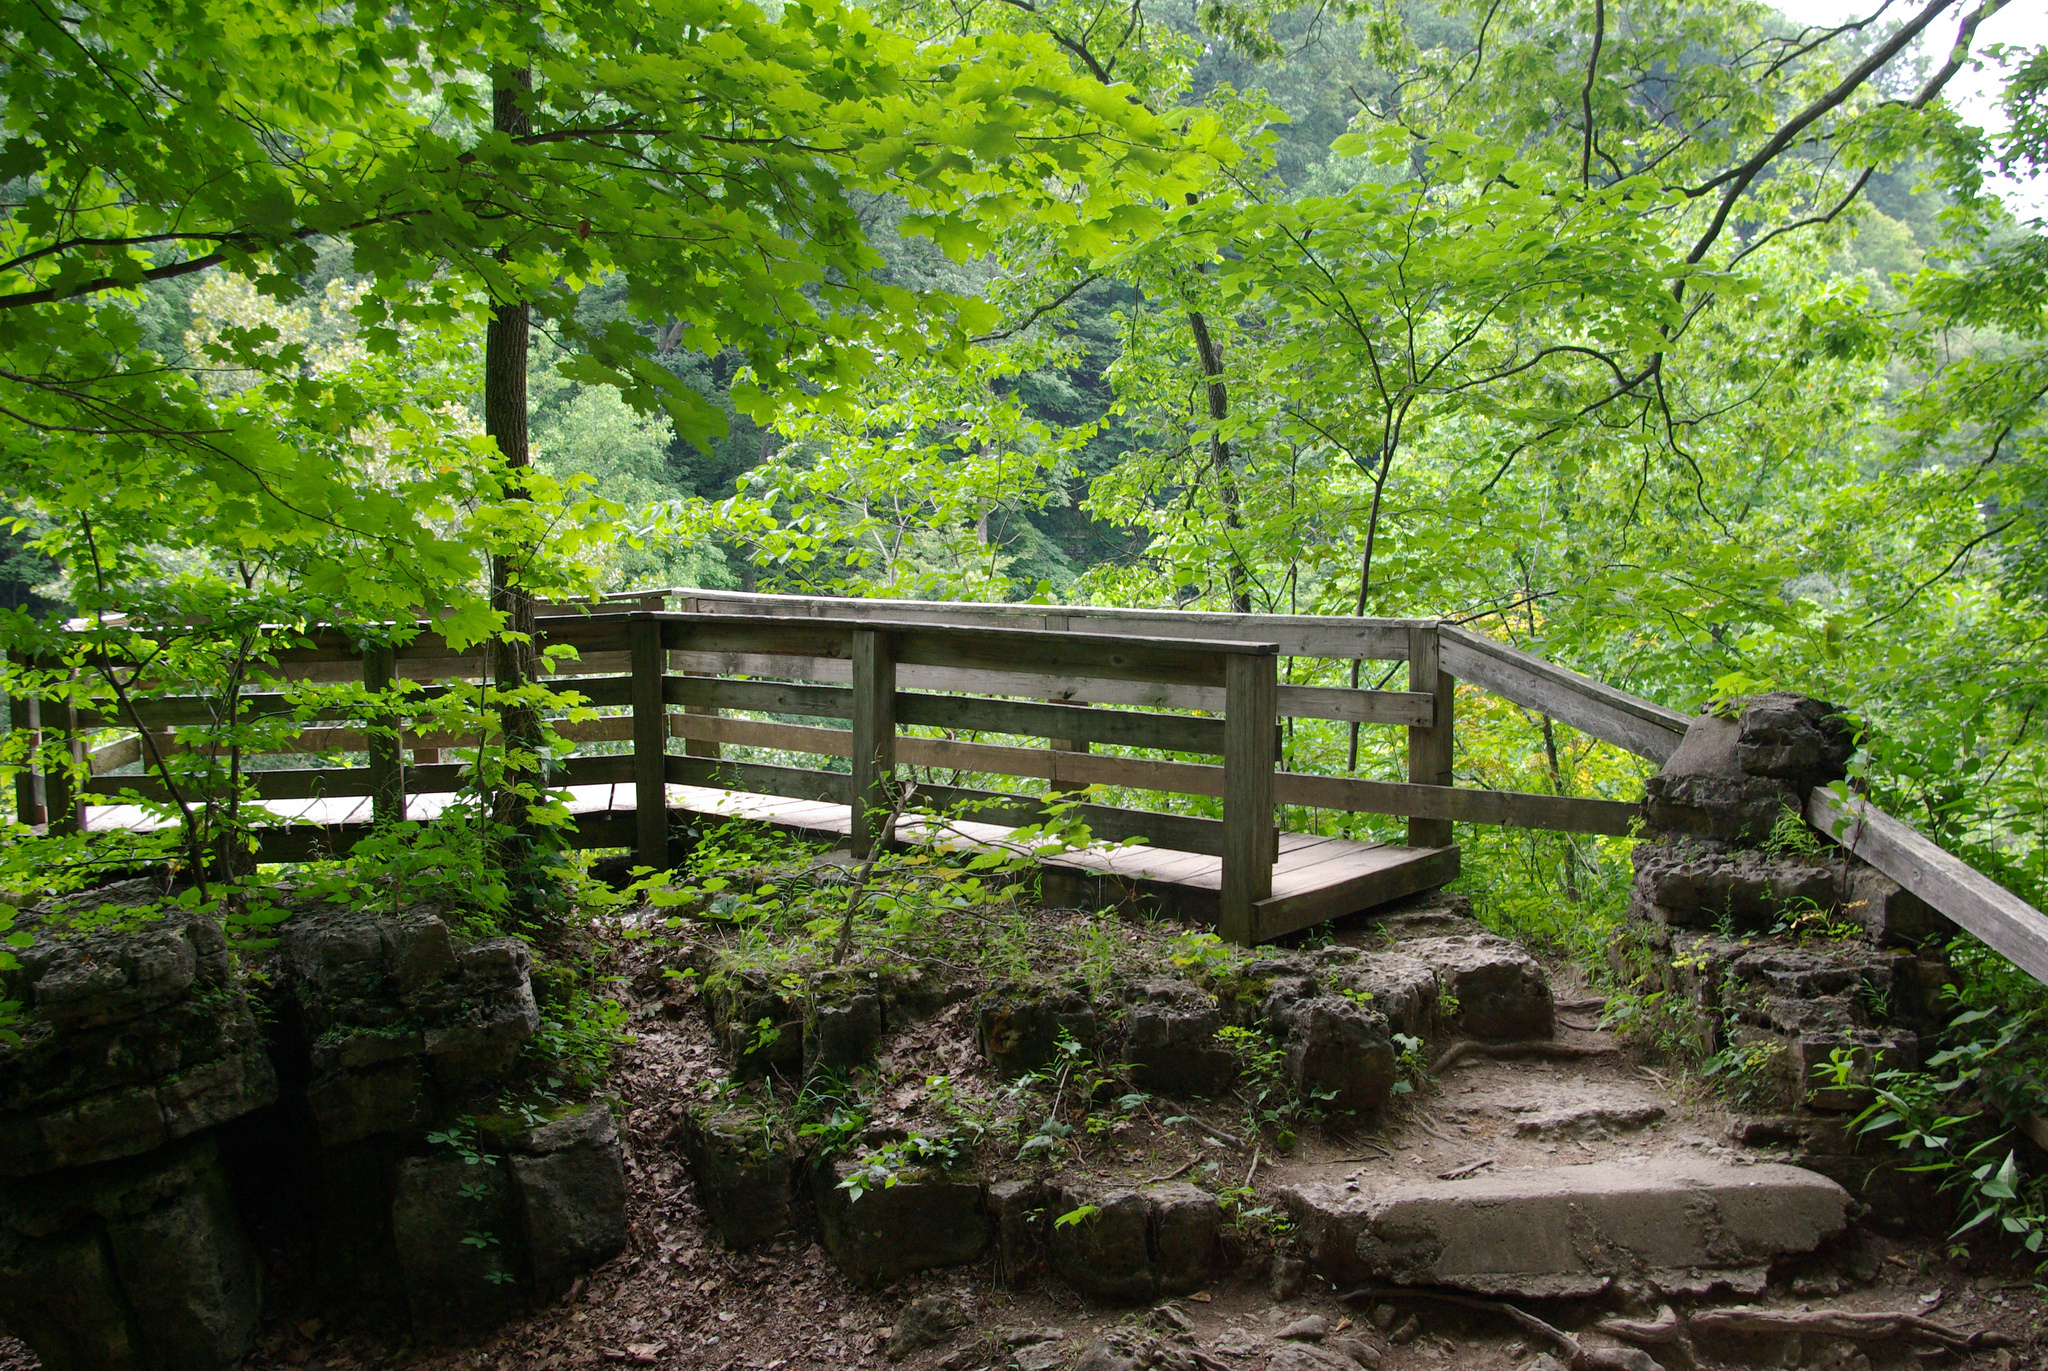 12 Out Of This World Hiking Spots In Indiana